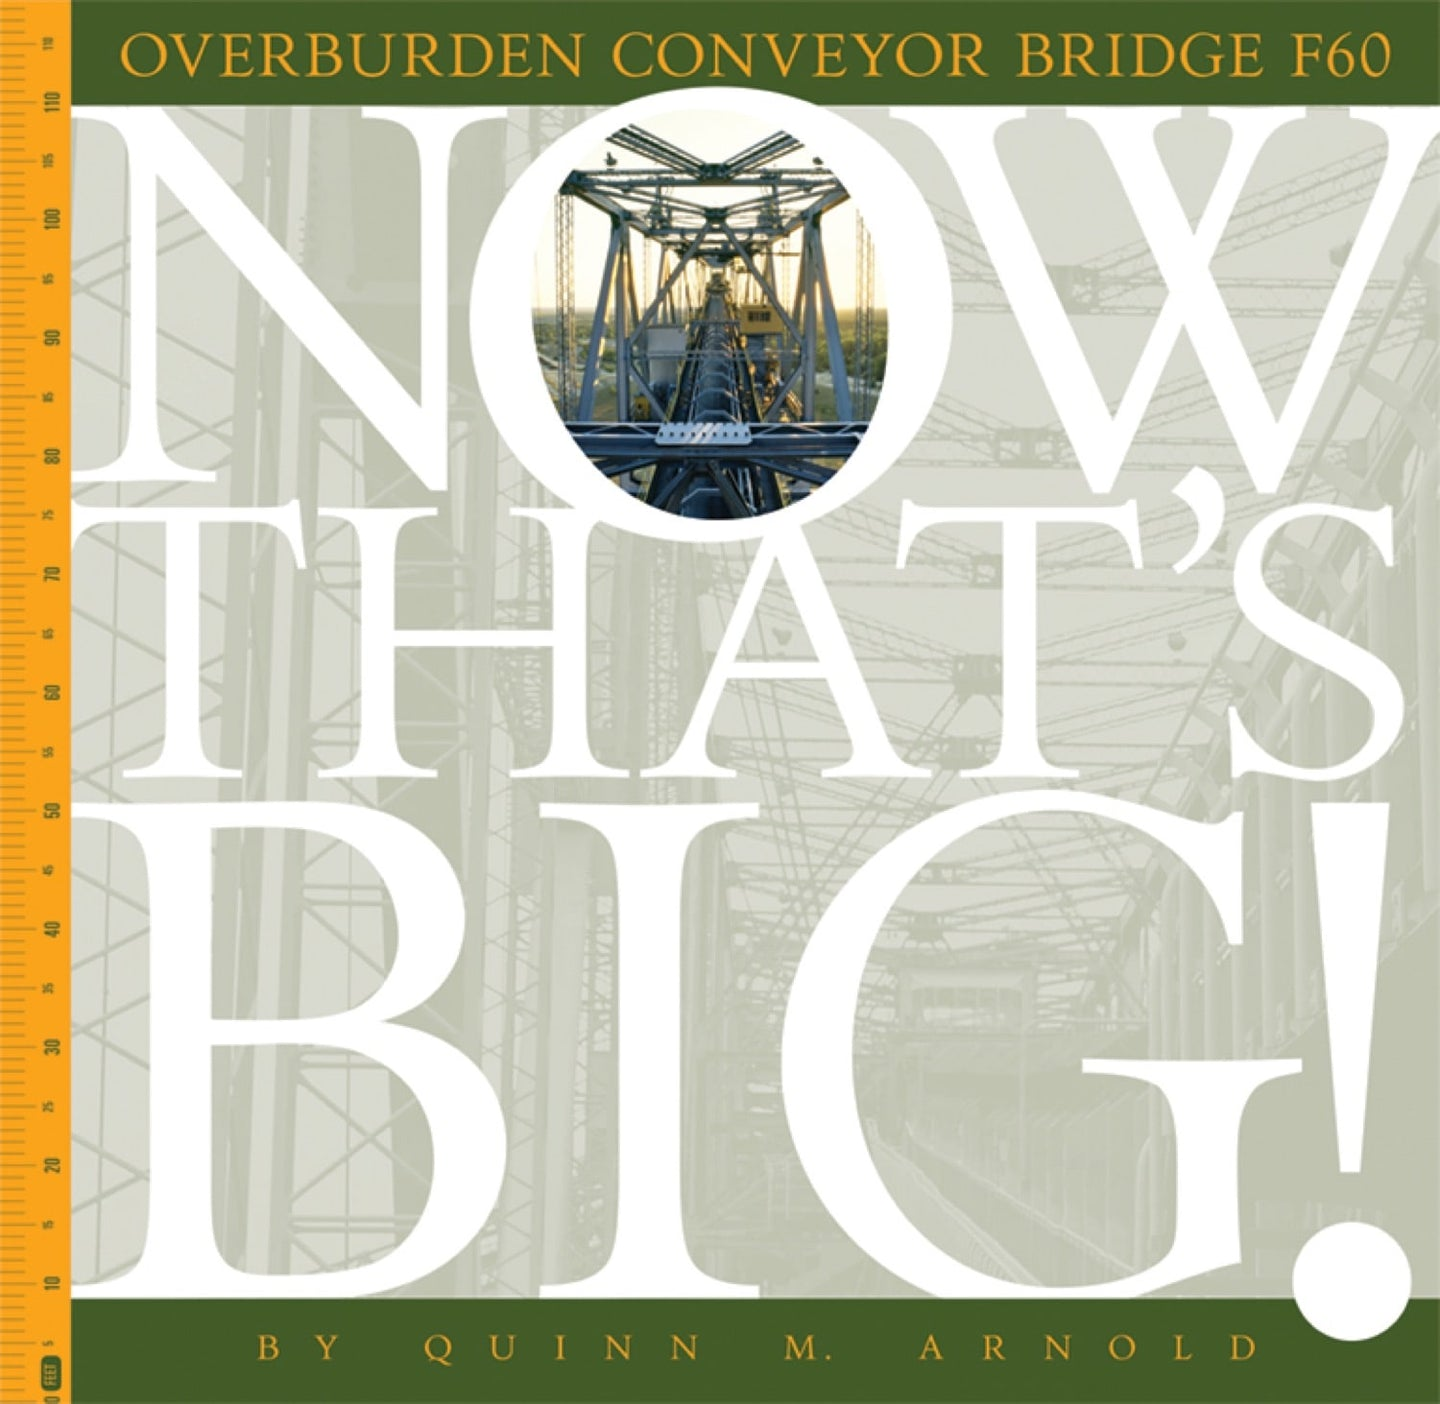 Now That's Big!: Overburden Conveyor Bridge F60